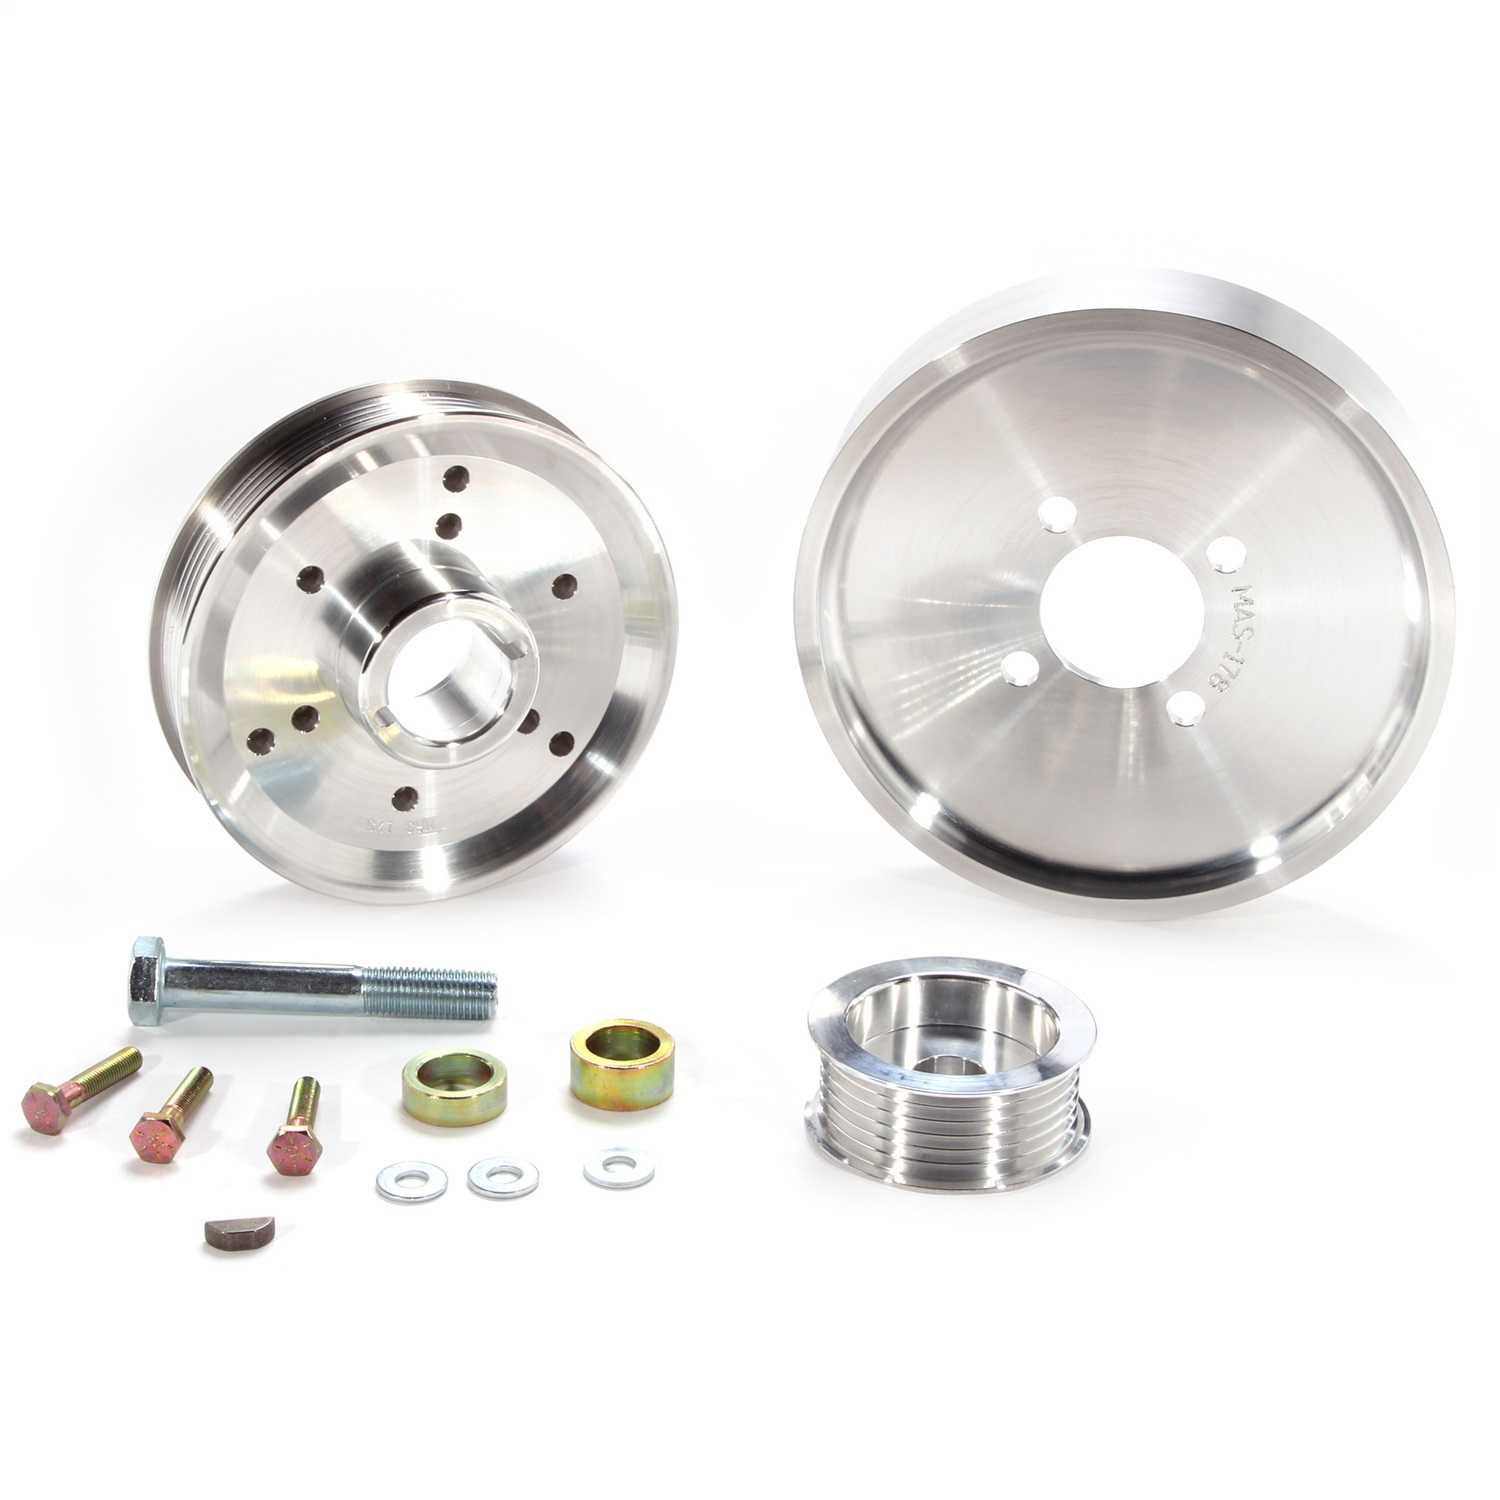 BBK Performance 1559 Power-Plus Series Underdrive Pulley System Fits Mustang